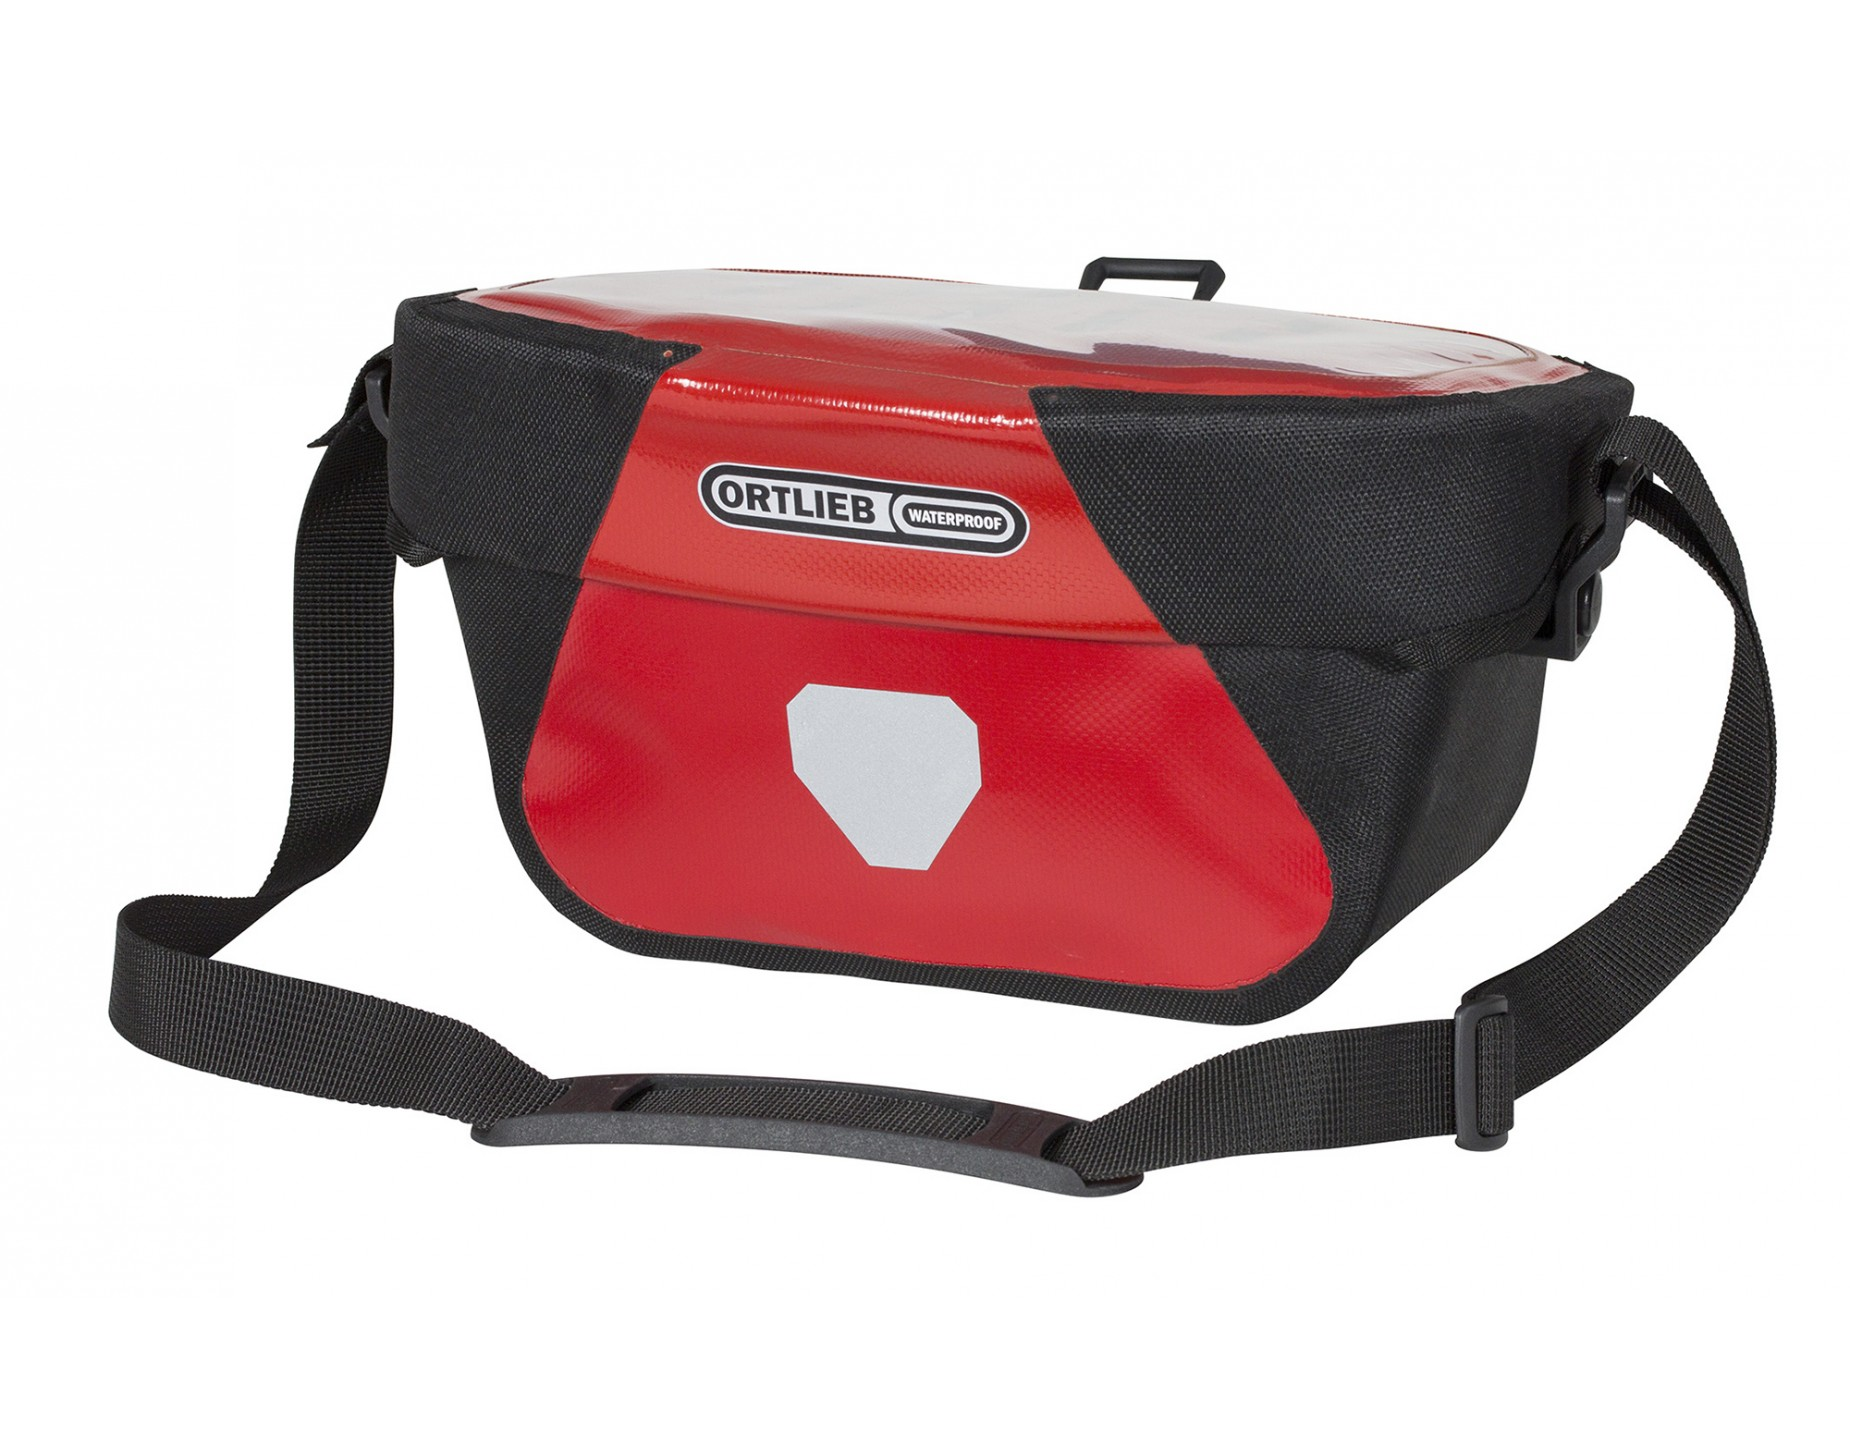 ORTLIEB Ultimate 6 S Classic handlebar bag – everything